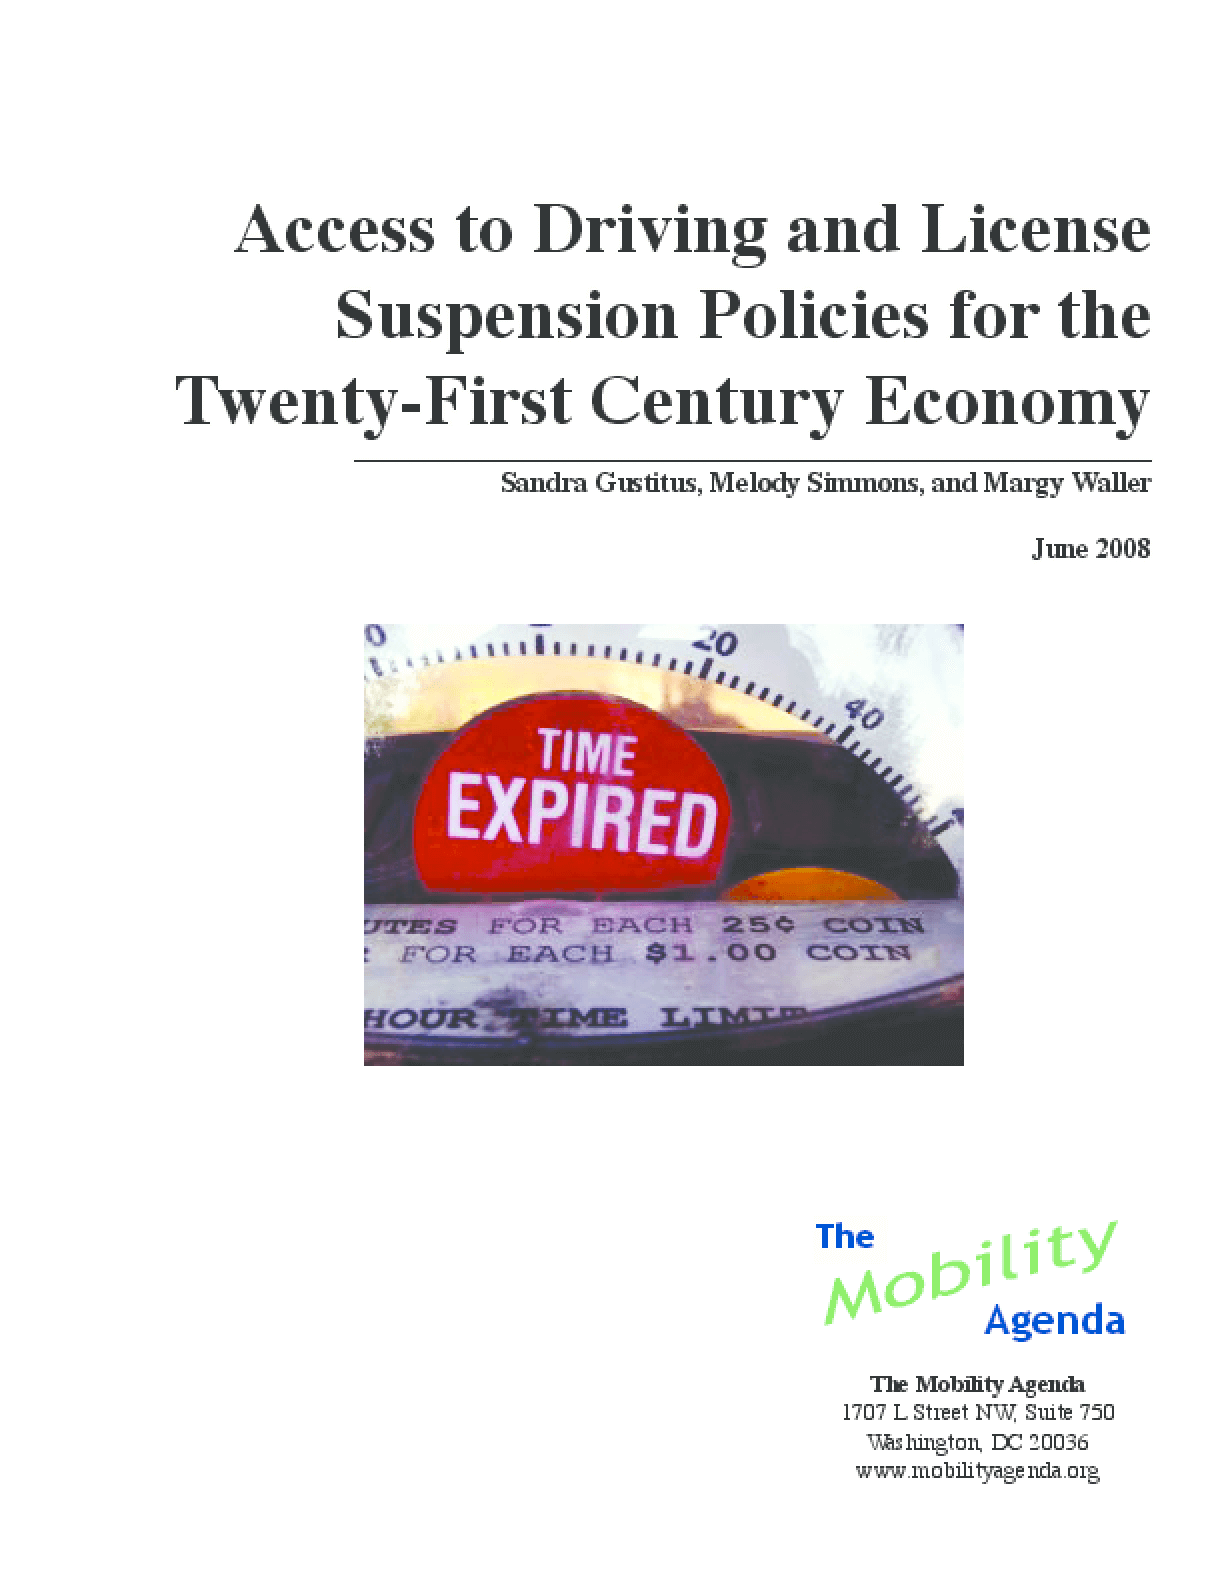 Access to Driving and License Suspension Policies for the Twenty-First Century Economy